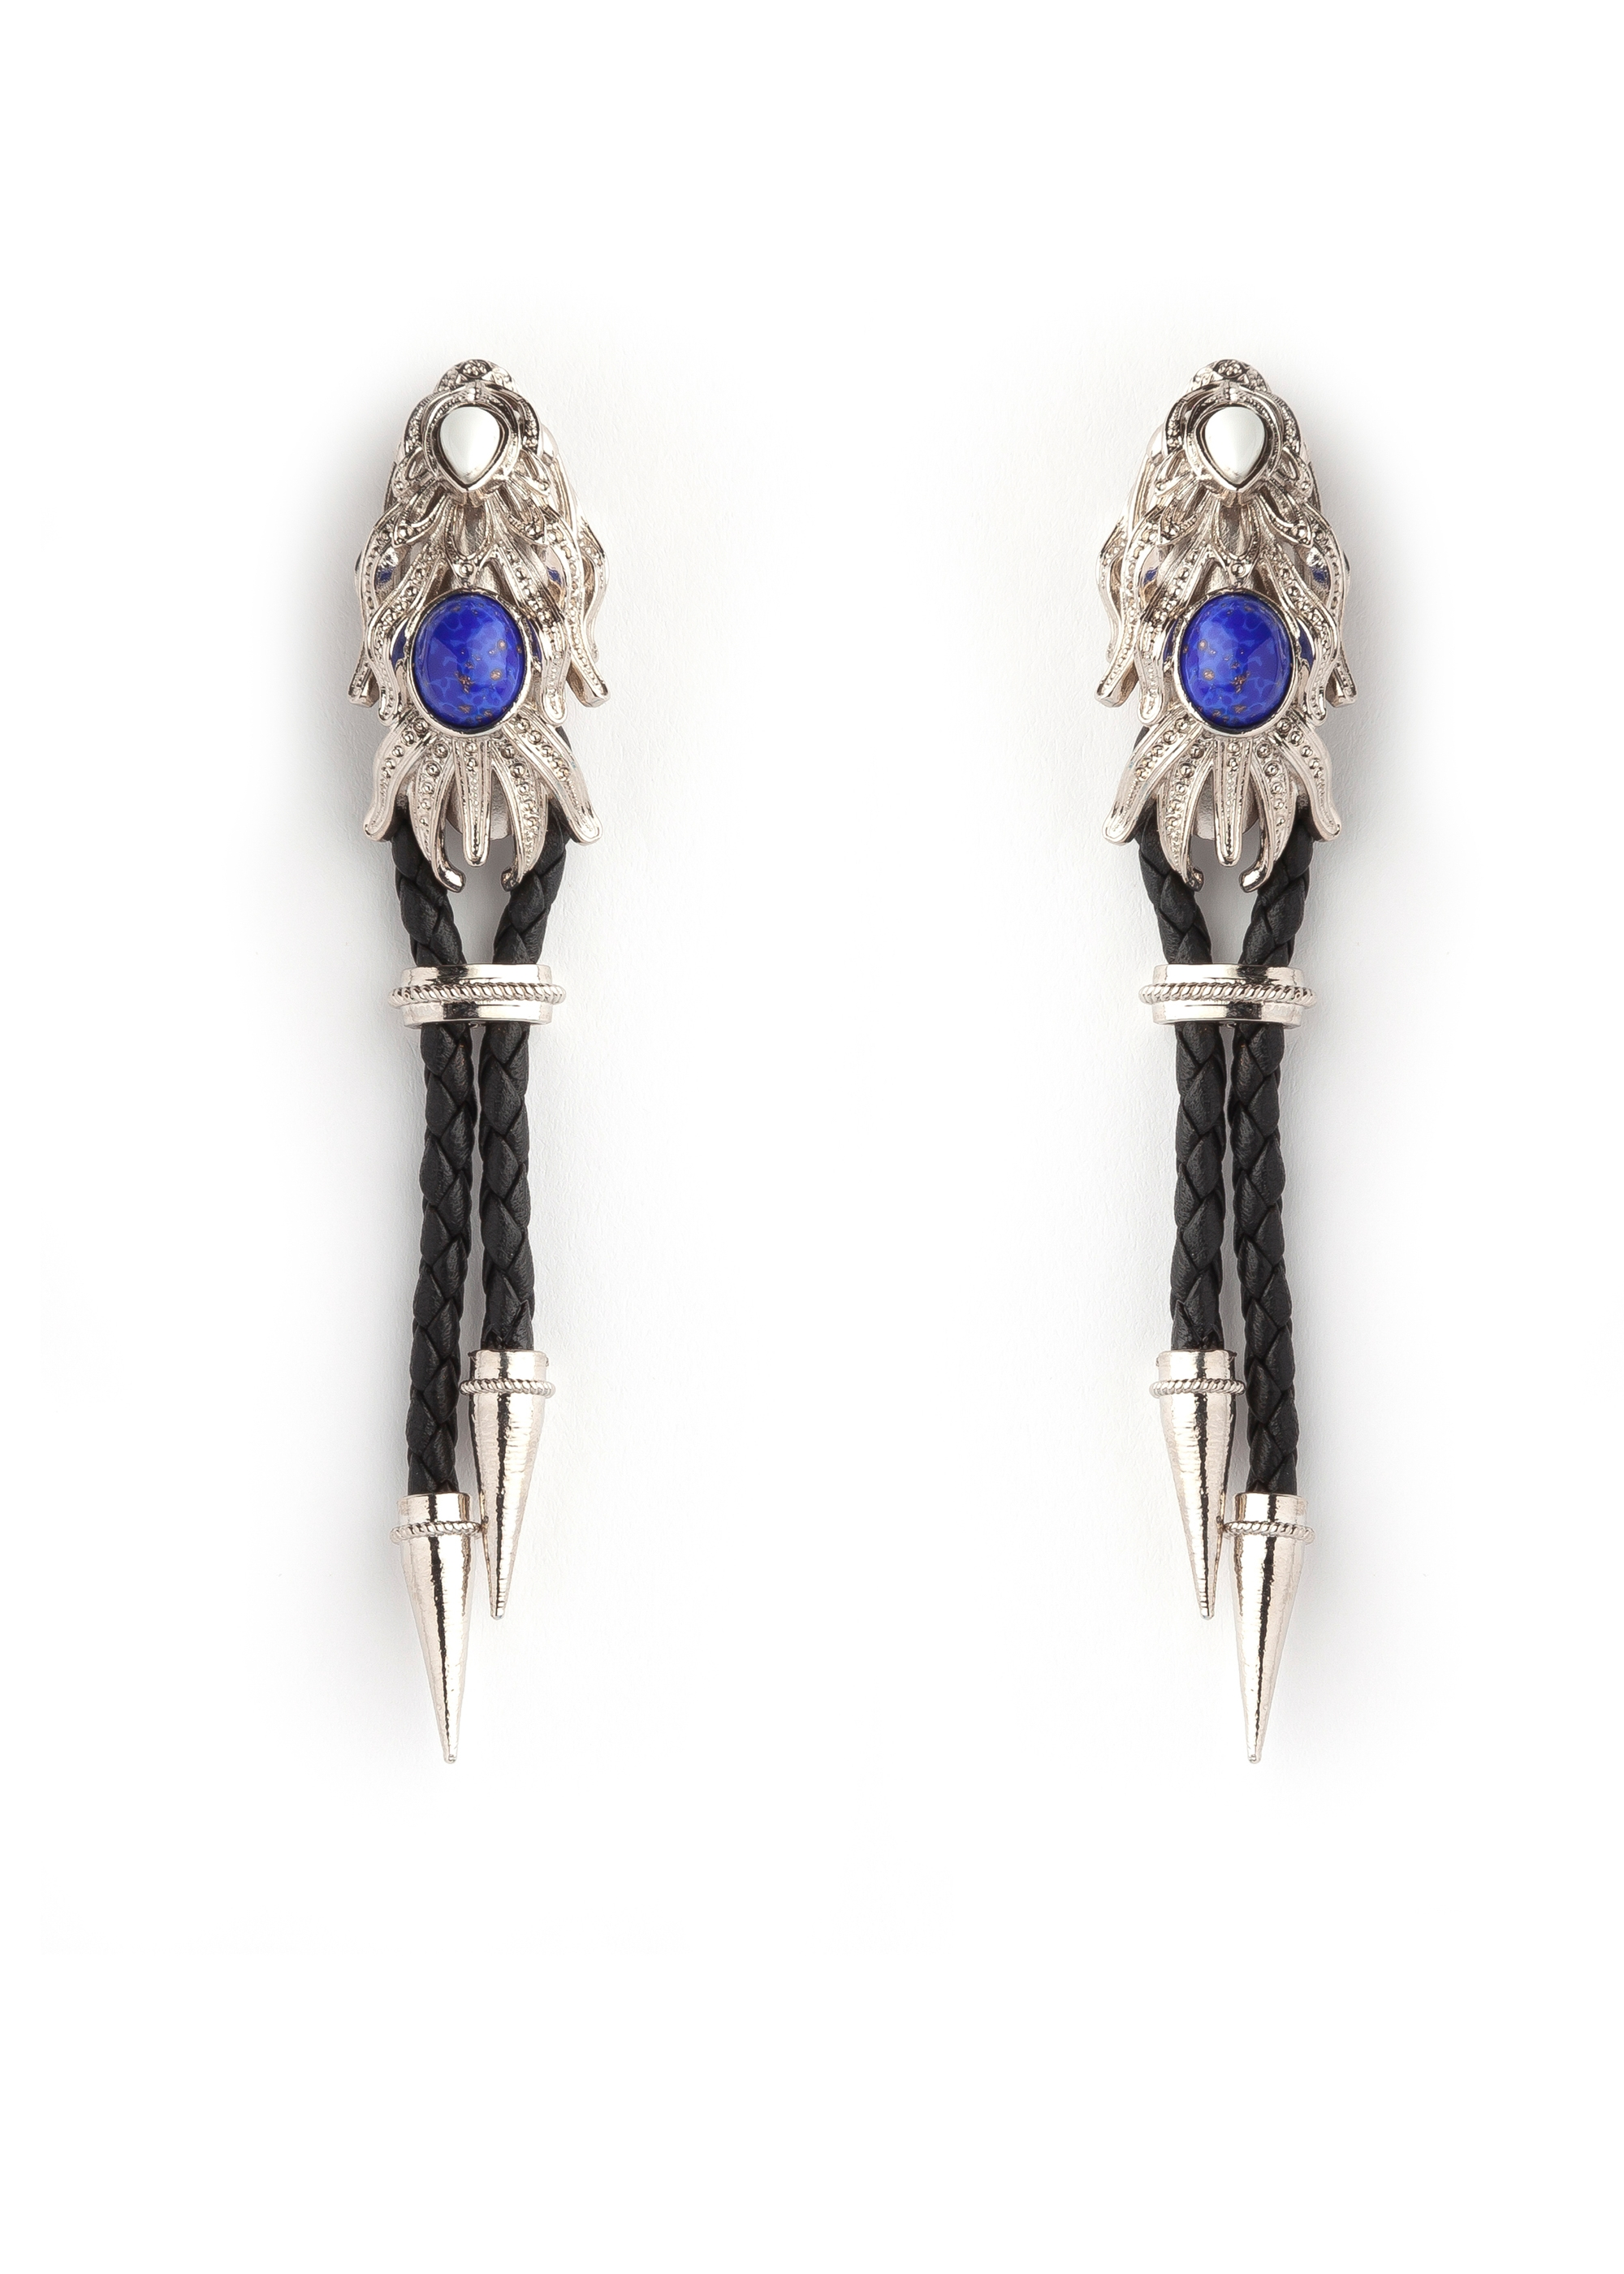 Black Silver Dragonfish Luxury Earrings by Sonia Petroff on curated-crowd.com